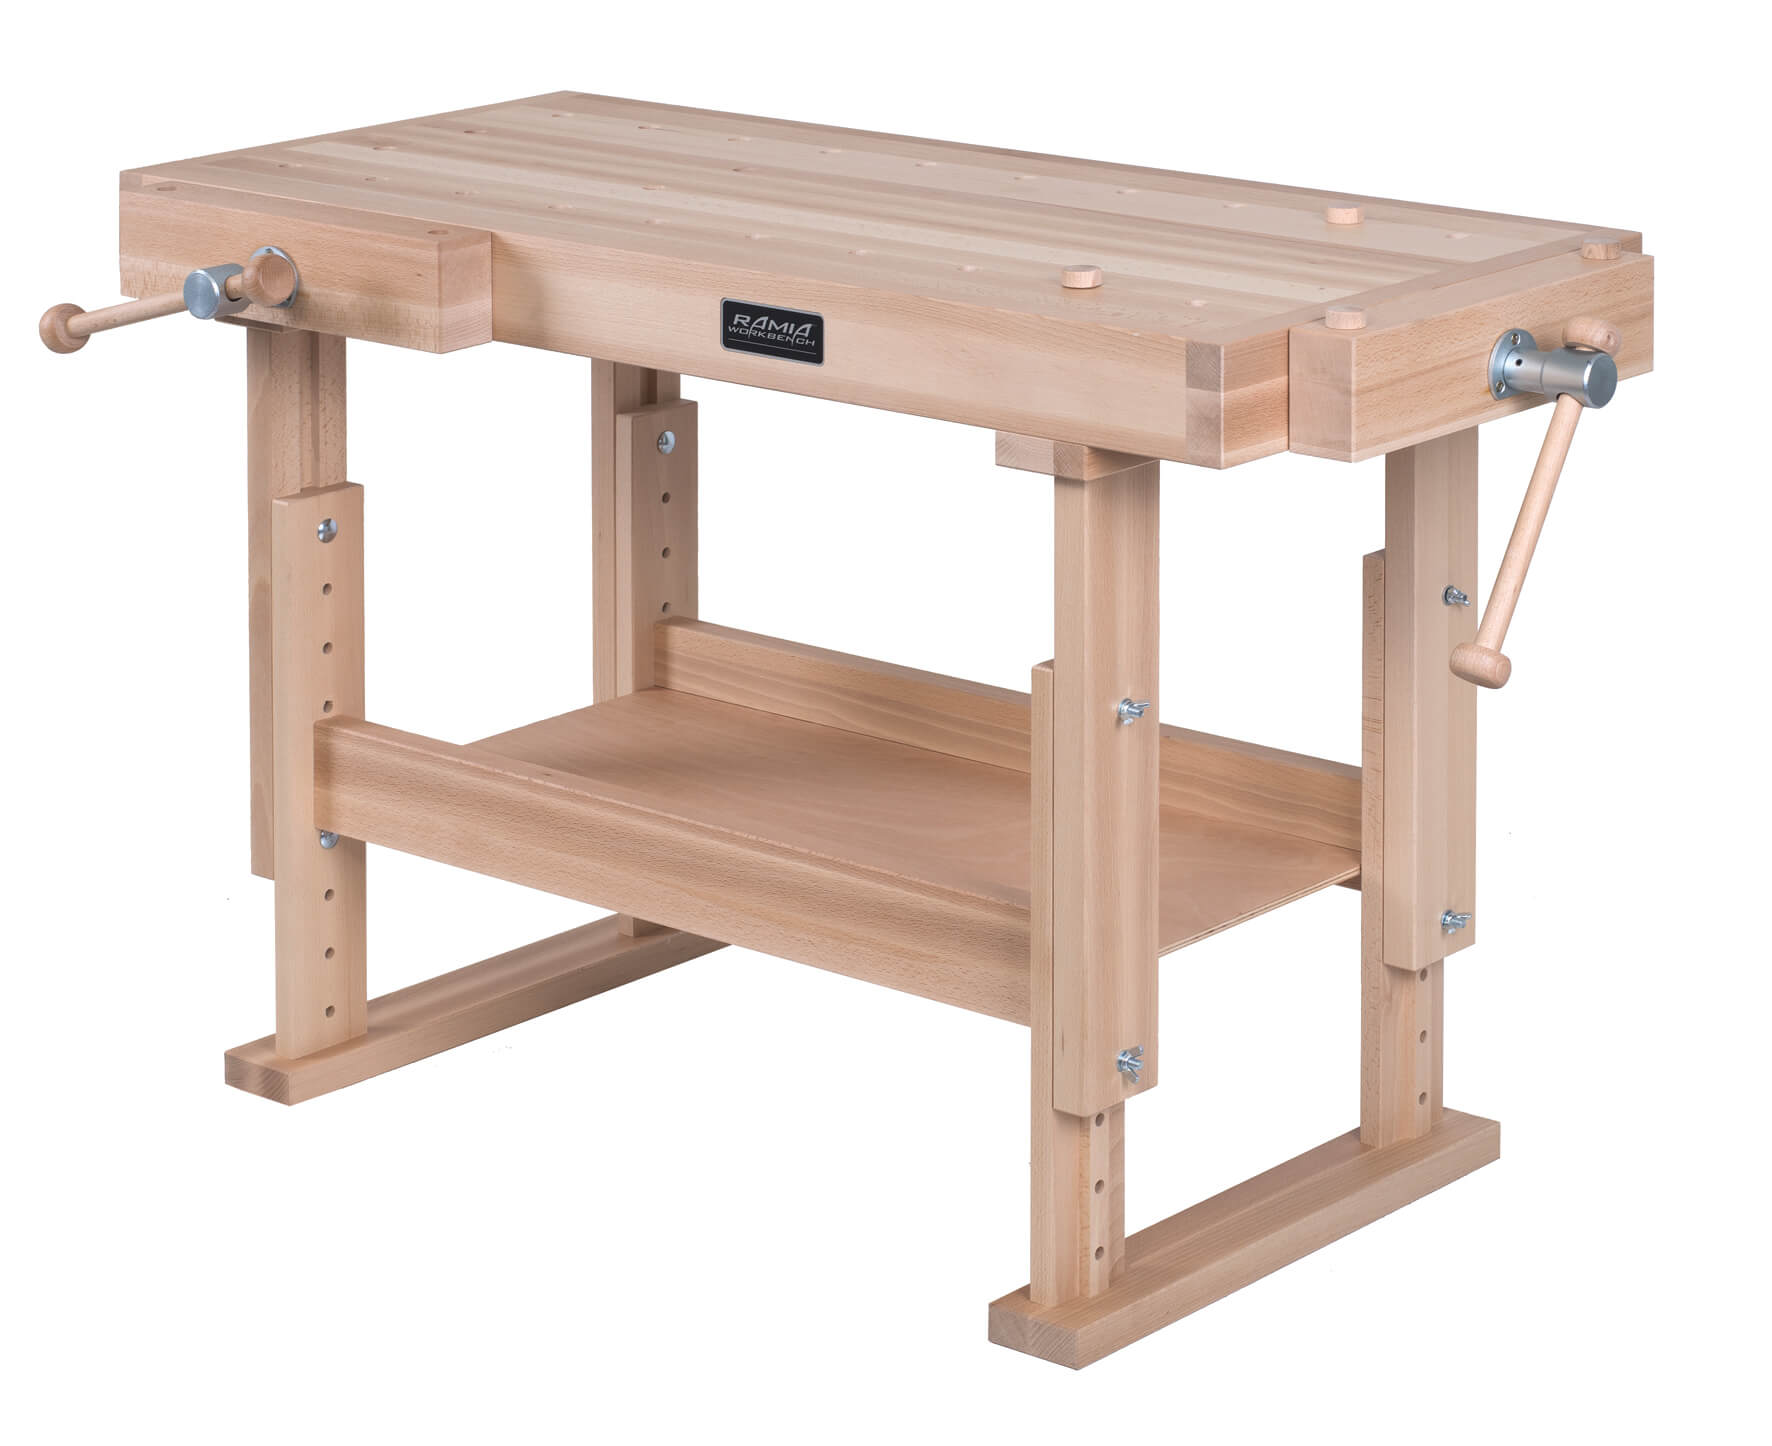 Edubench Child's Bench - adjustable height